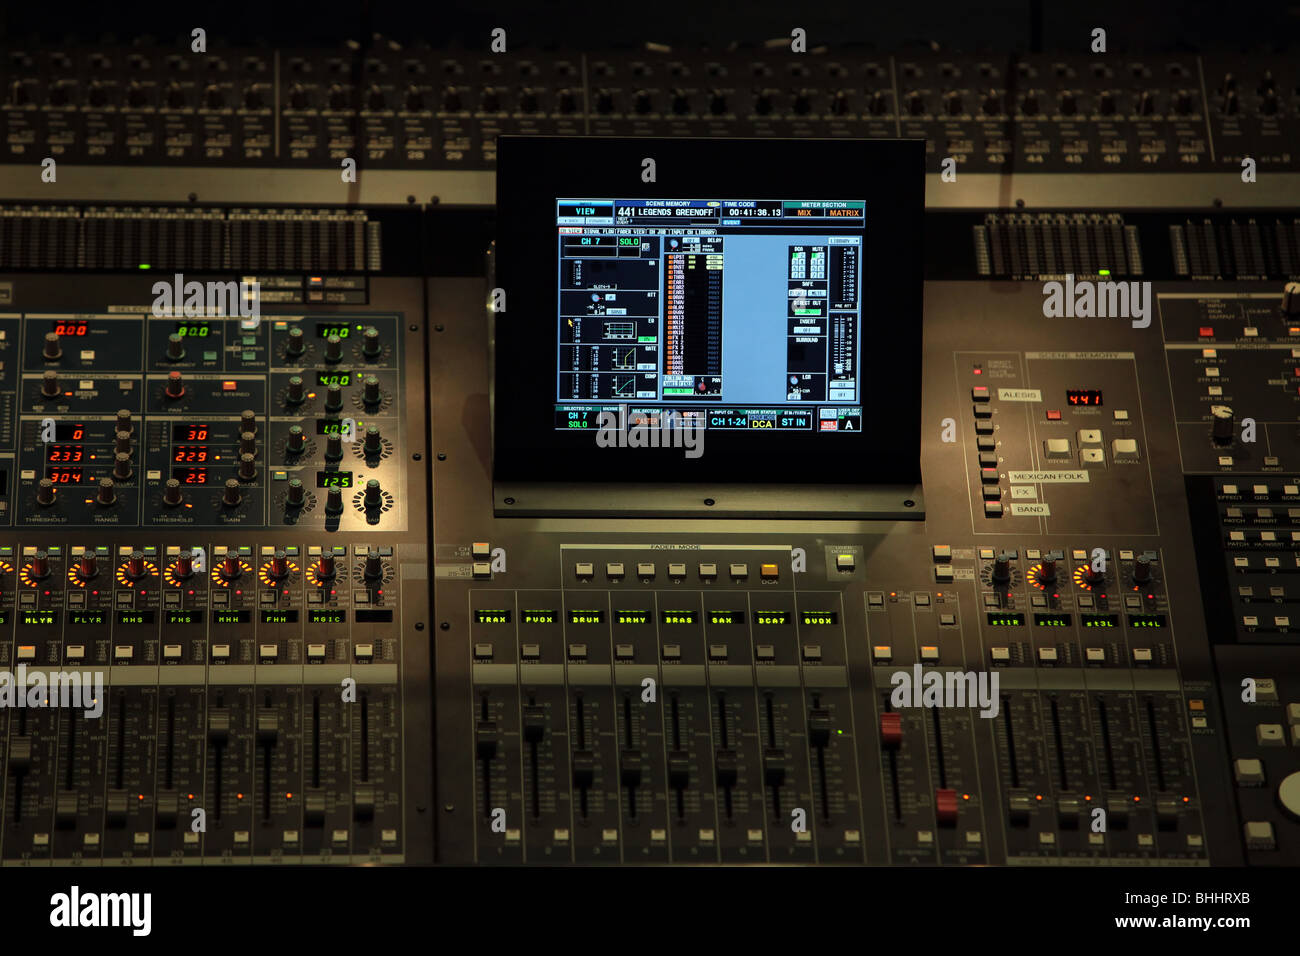 Digital Control Panel : Digital control panel in dark for audio and lighting of